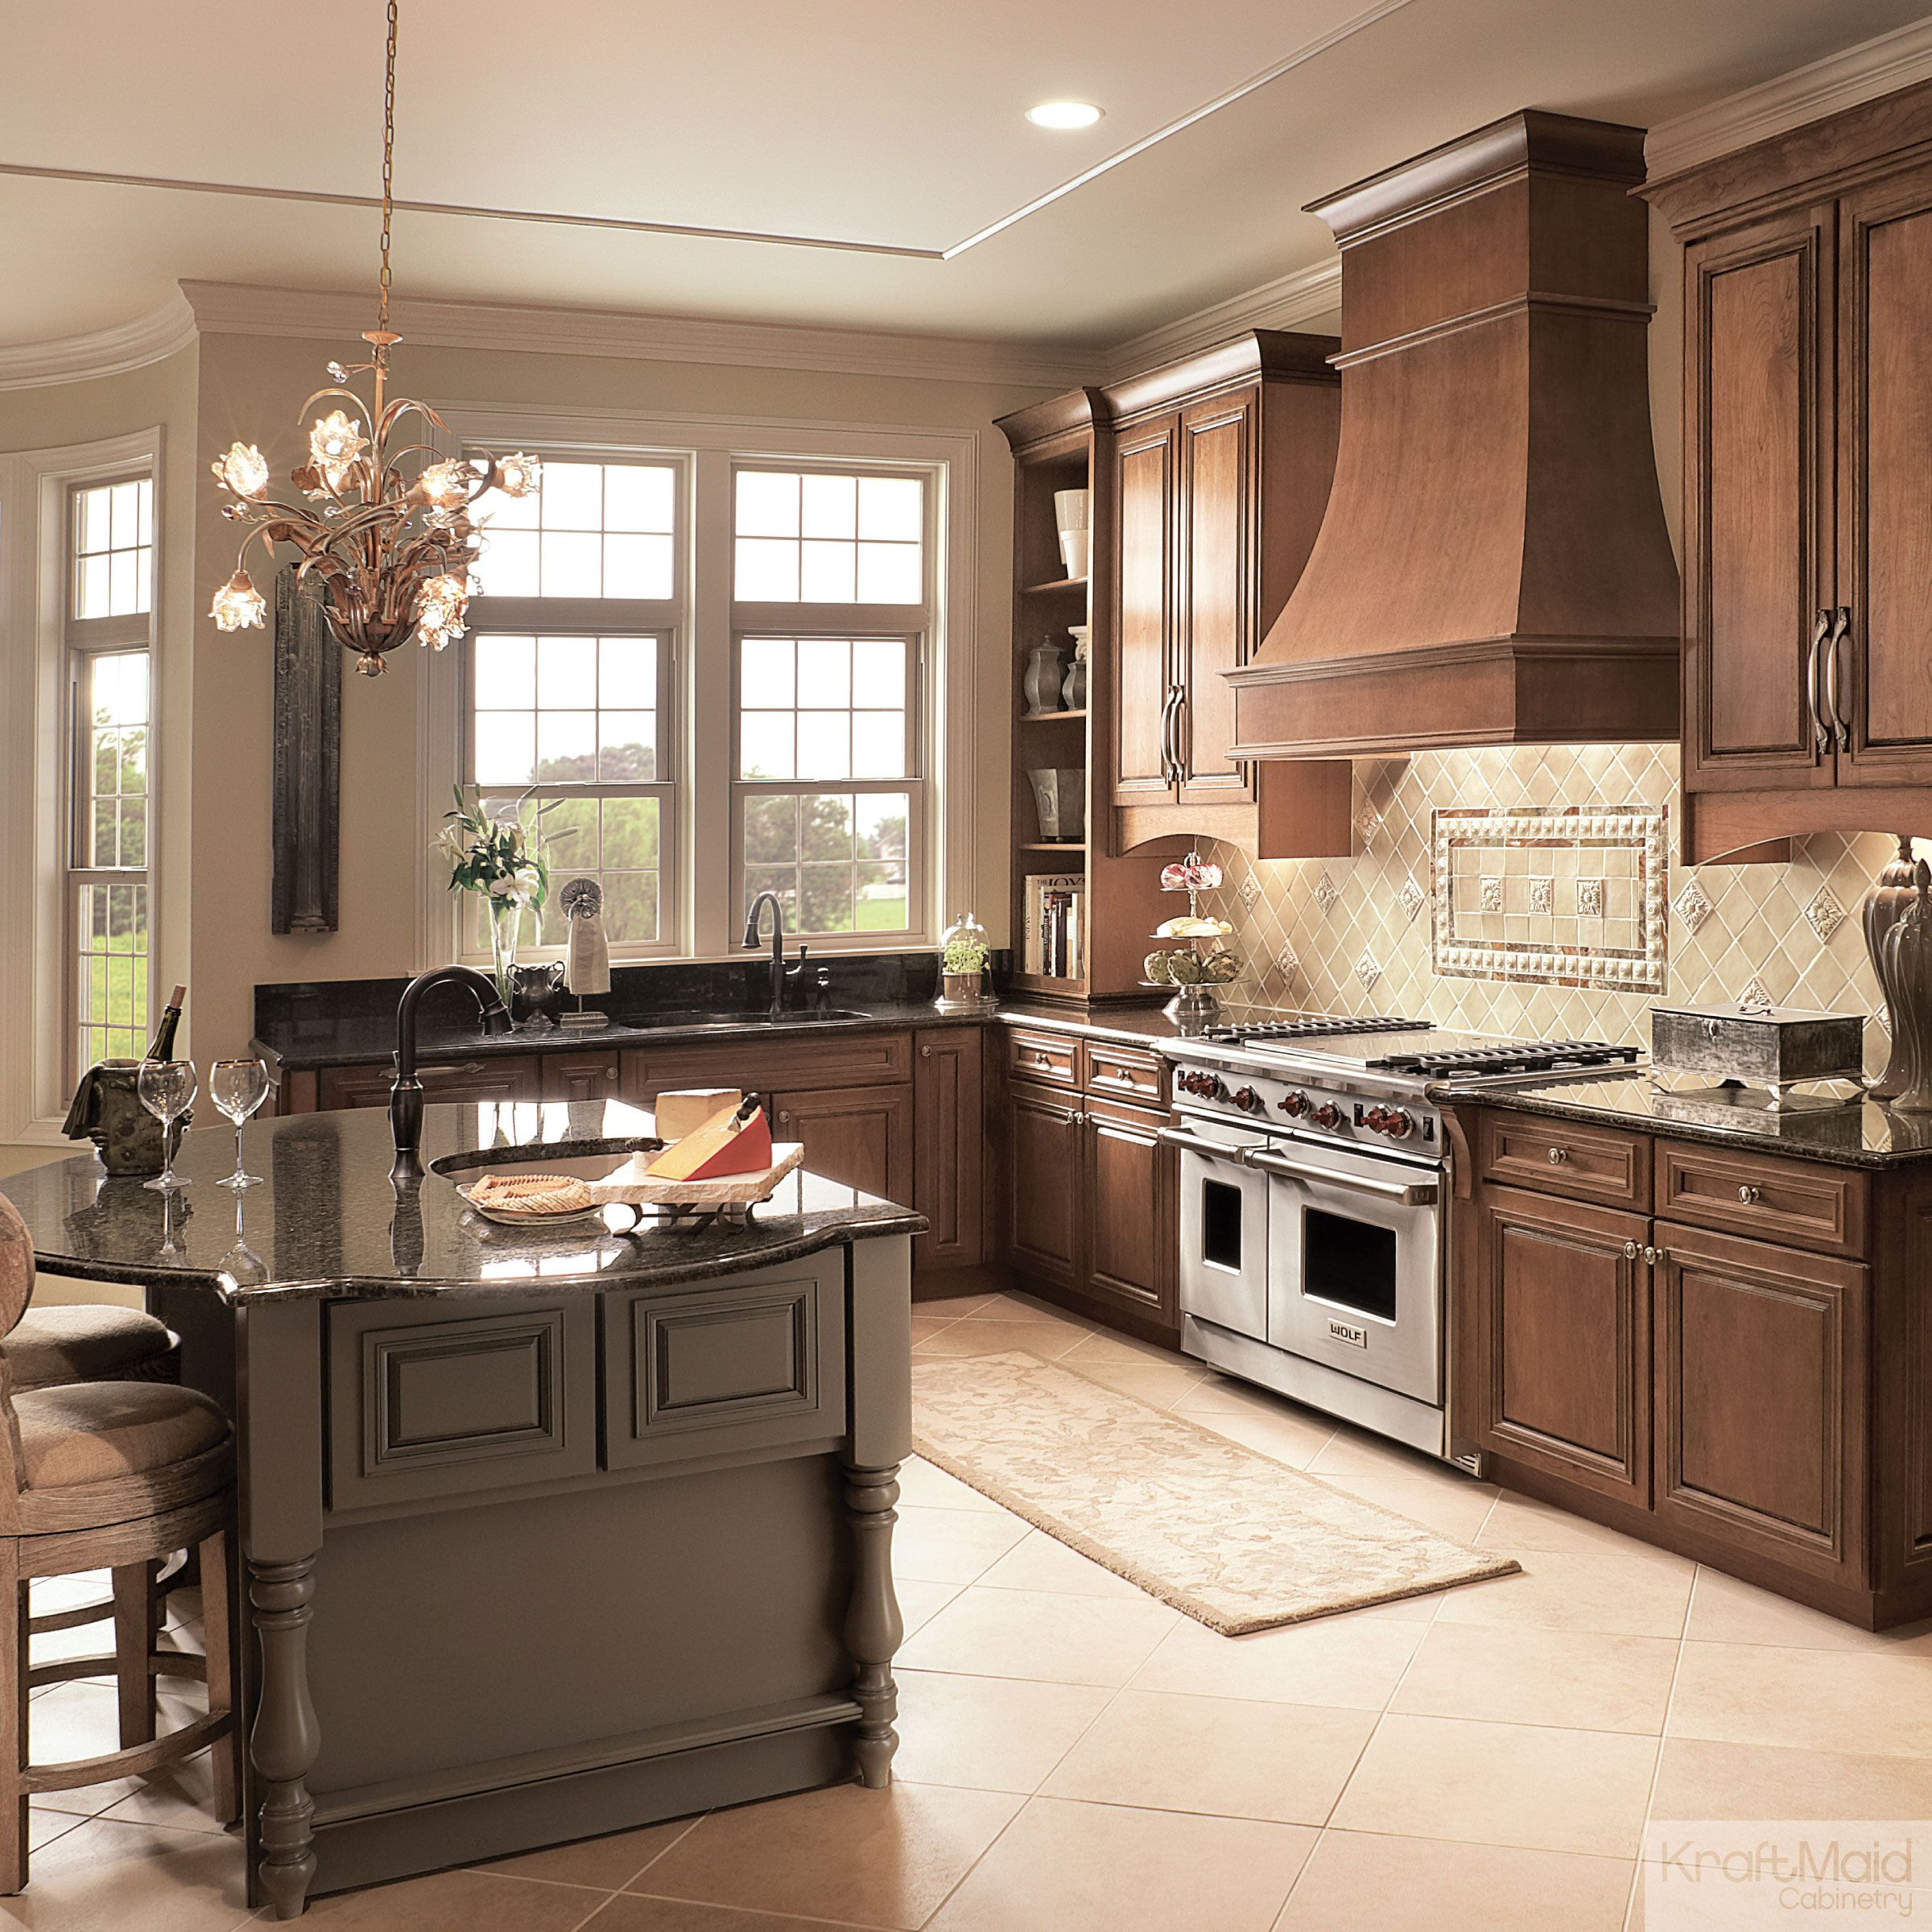 Kitchen Cabinets Stained Light: Kitchen Colors: Dark Is The New Neutral